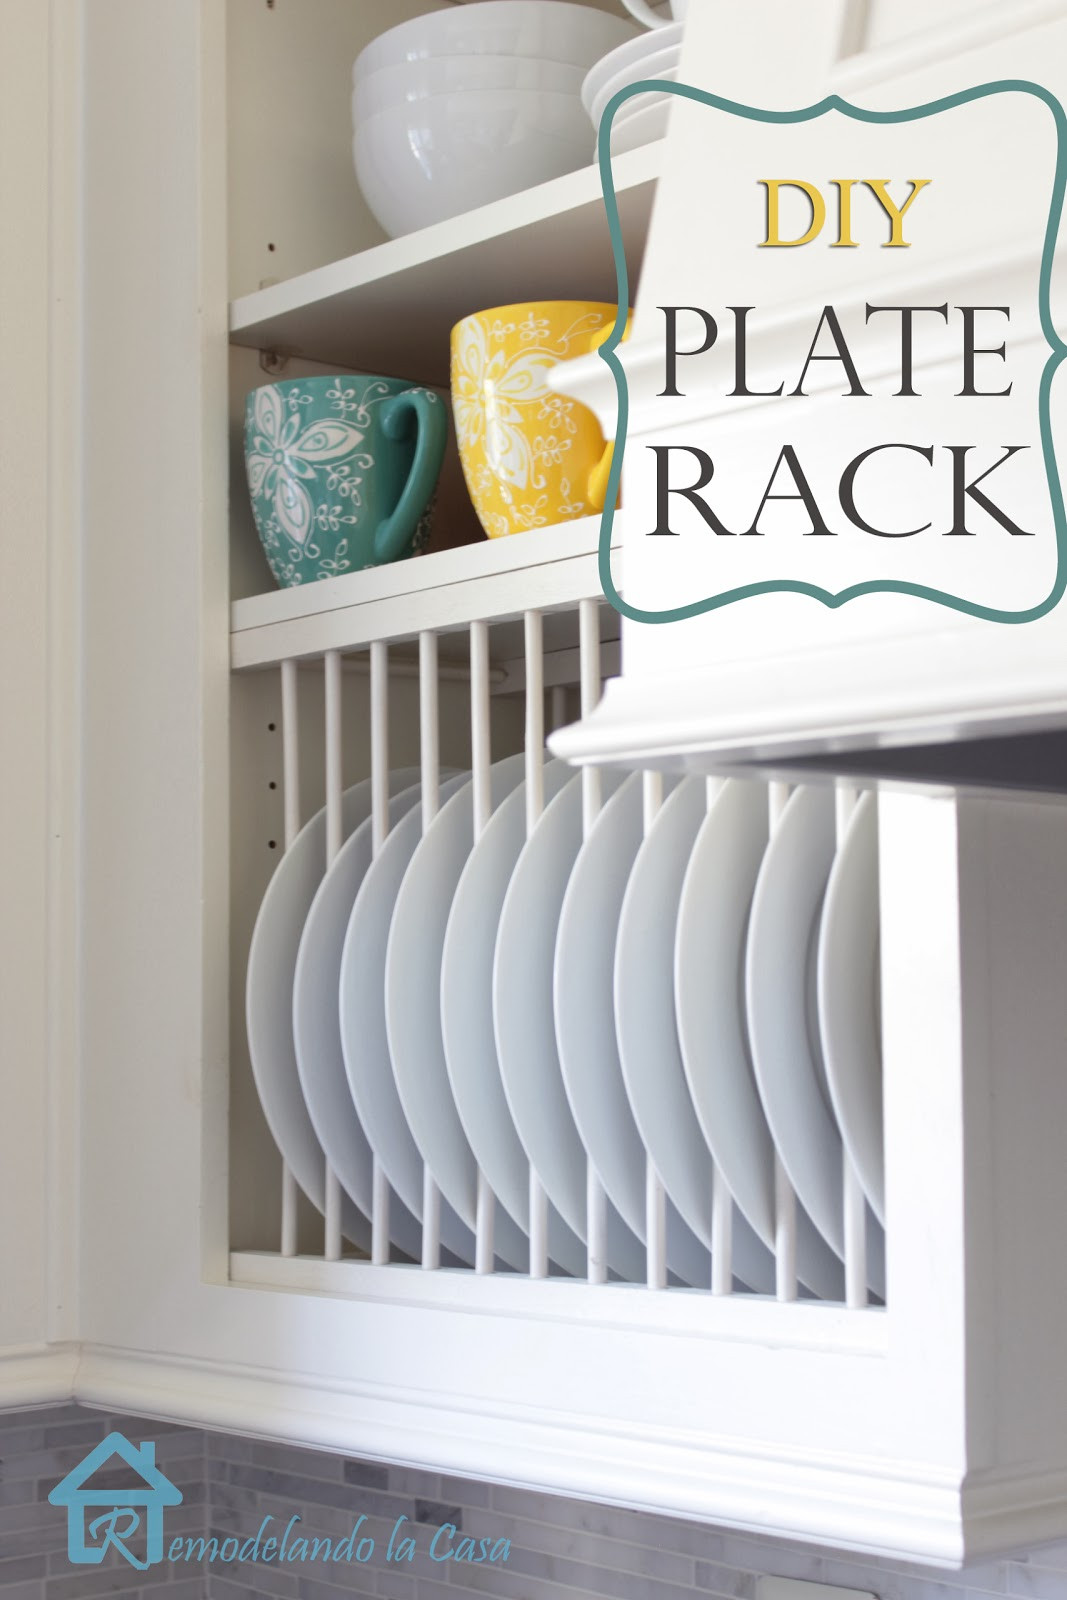 Best ideas about DIY Plate Rack . Save or Pin DIY Inside Cabinet Plate Rack Remodelando la Casa Now.